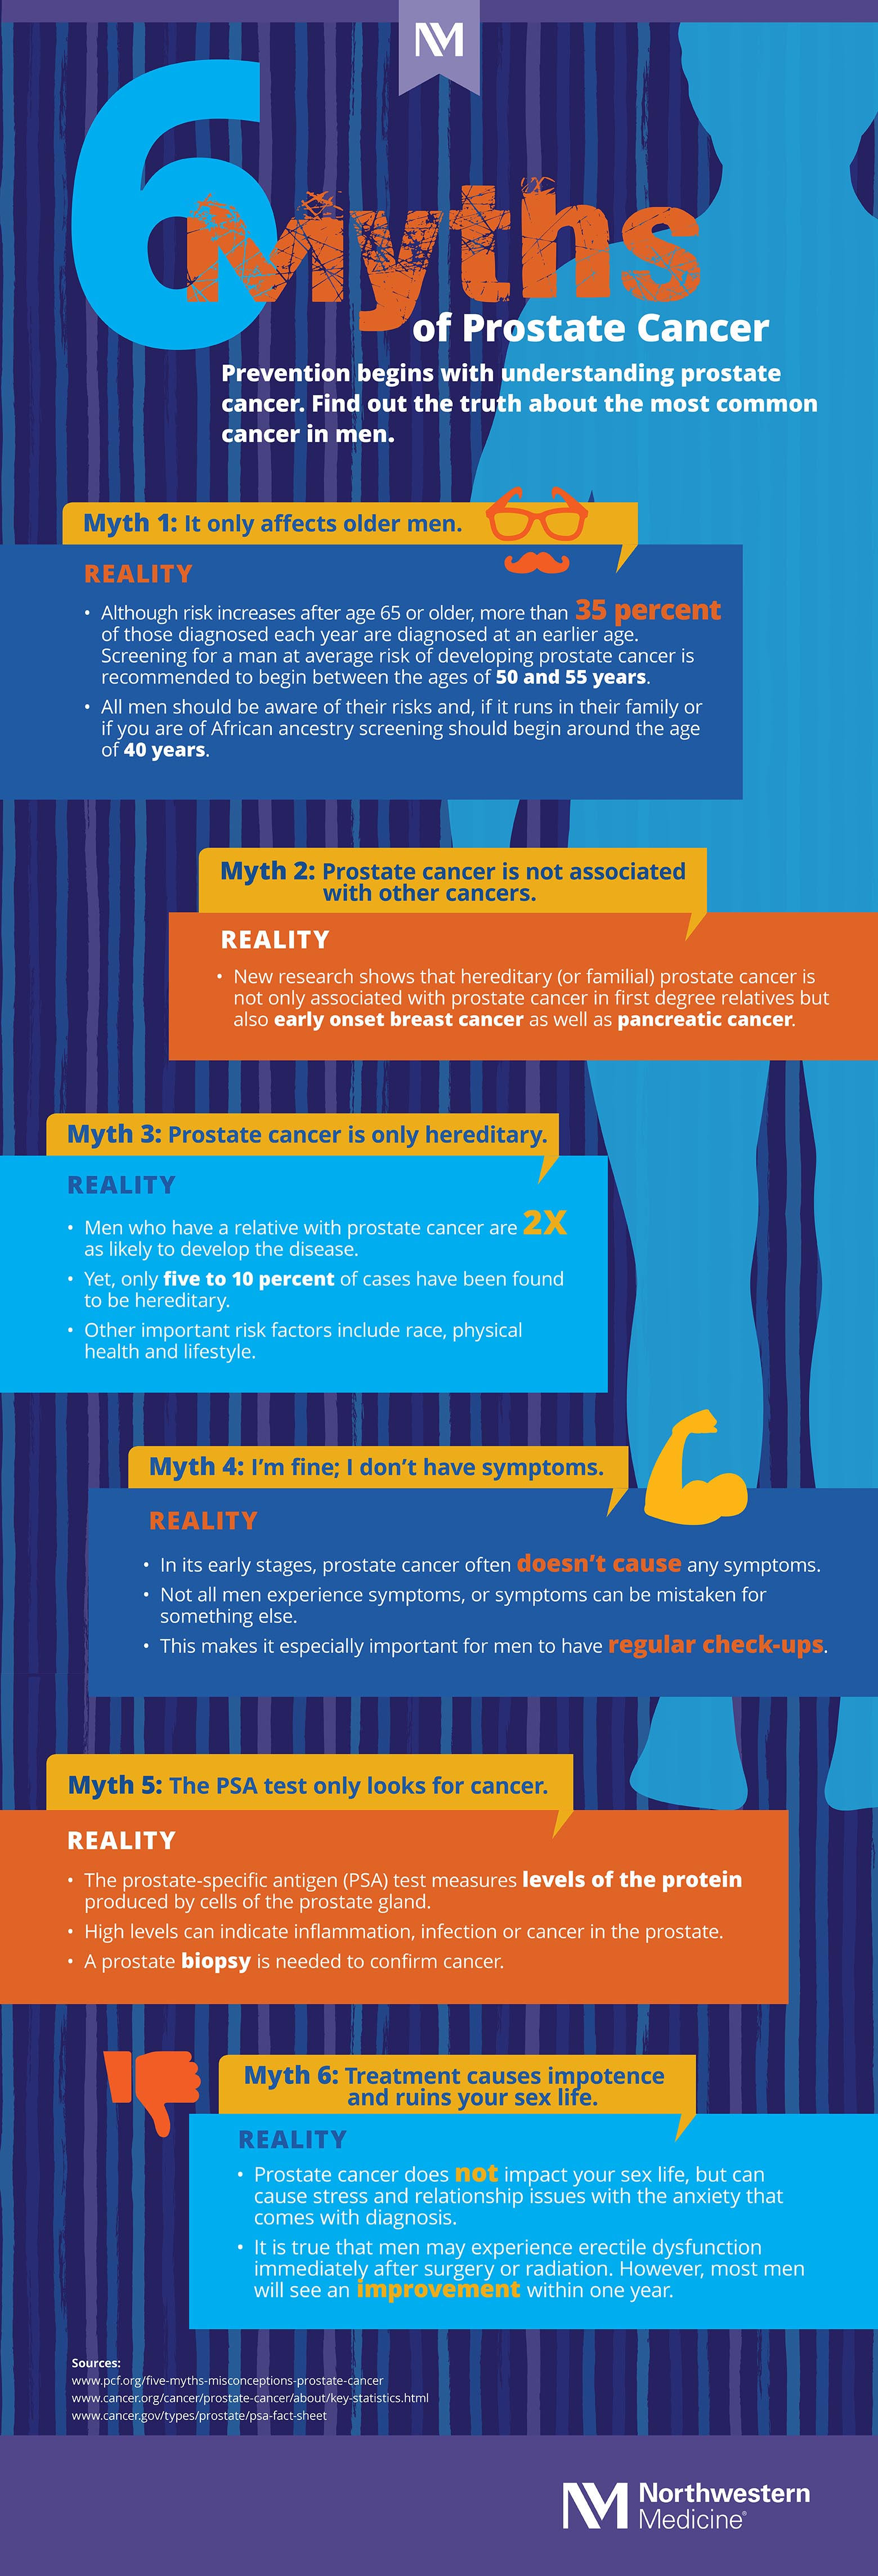 18-2221 Prostate Myths_Infographic-FINAL